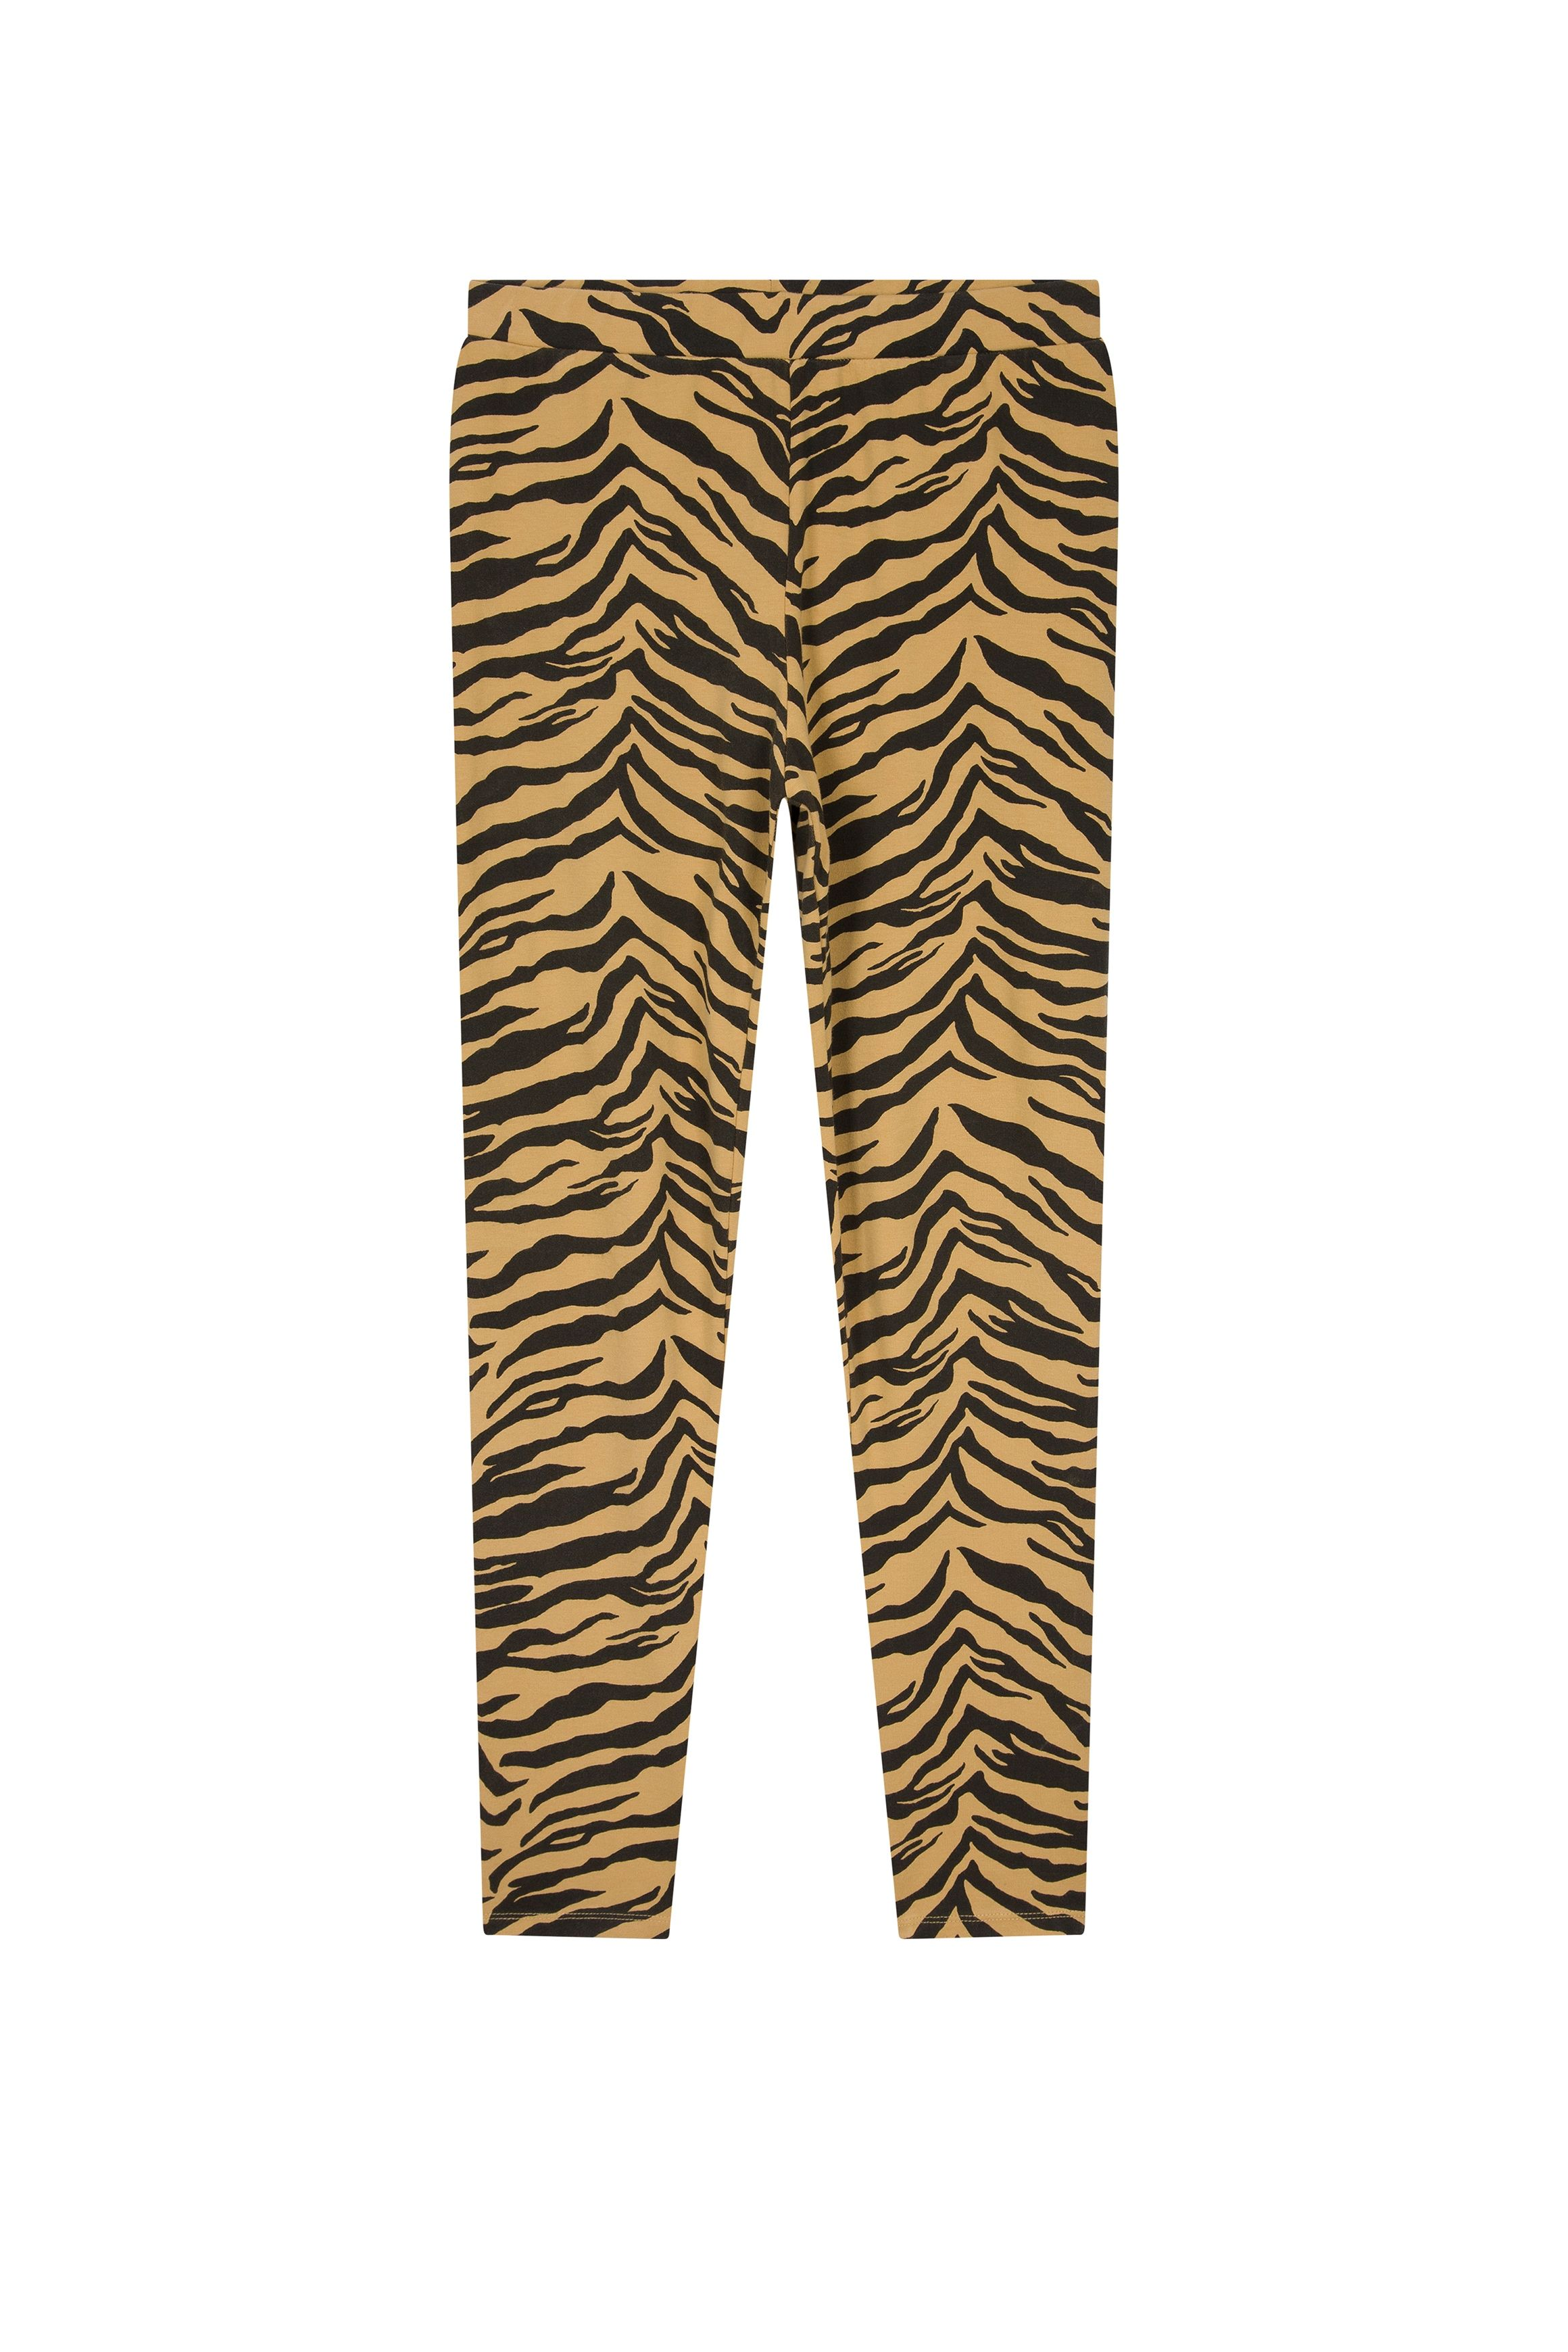 Image 4 du produit Legging Patio Tiger